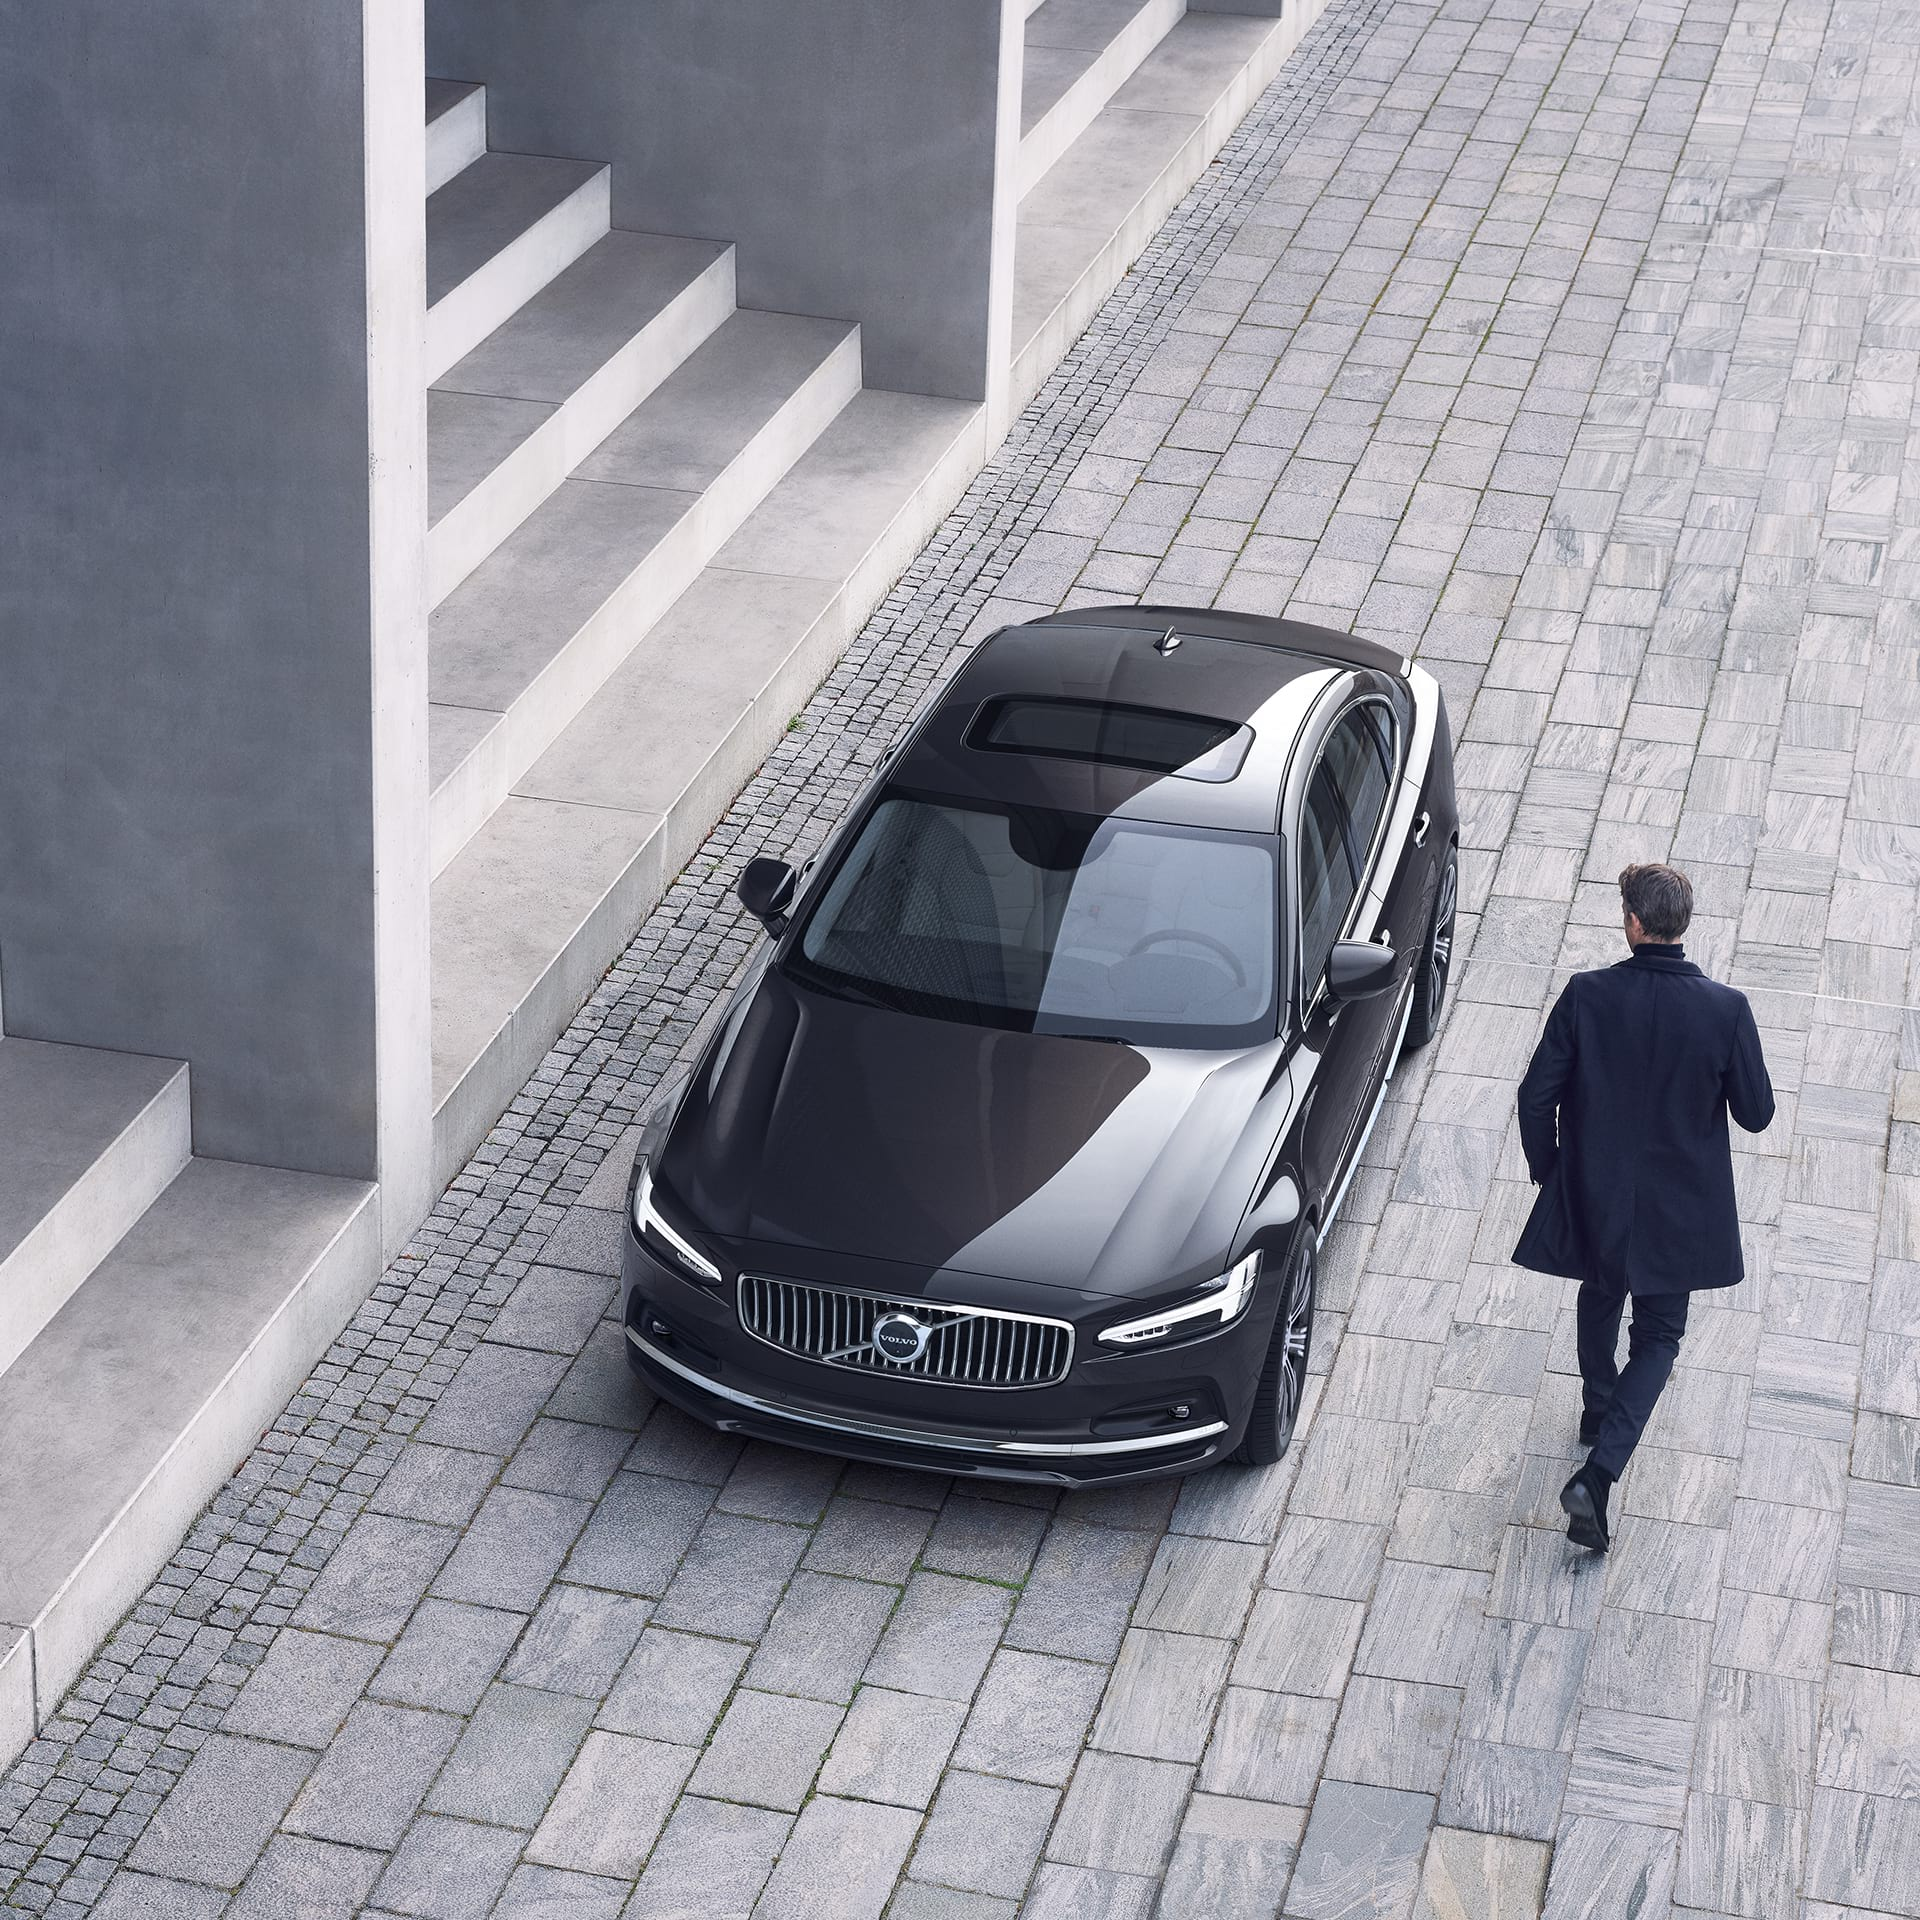 A Volvo S90 is parked in front of a set of stairs, a man walks towards the car